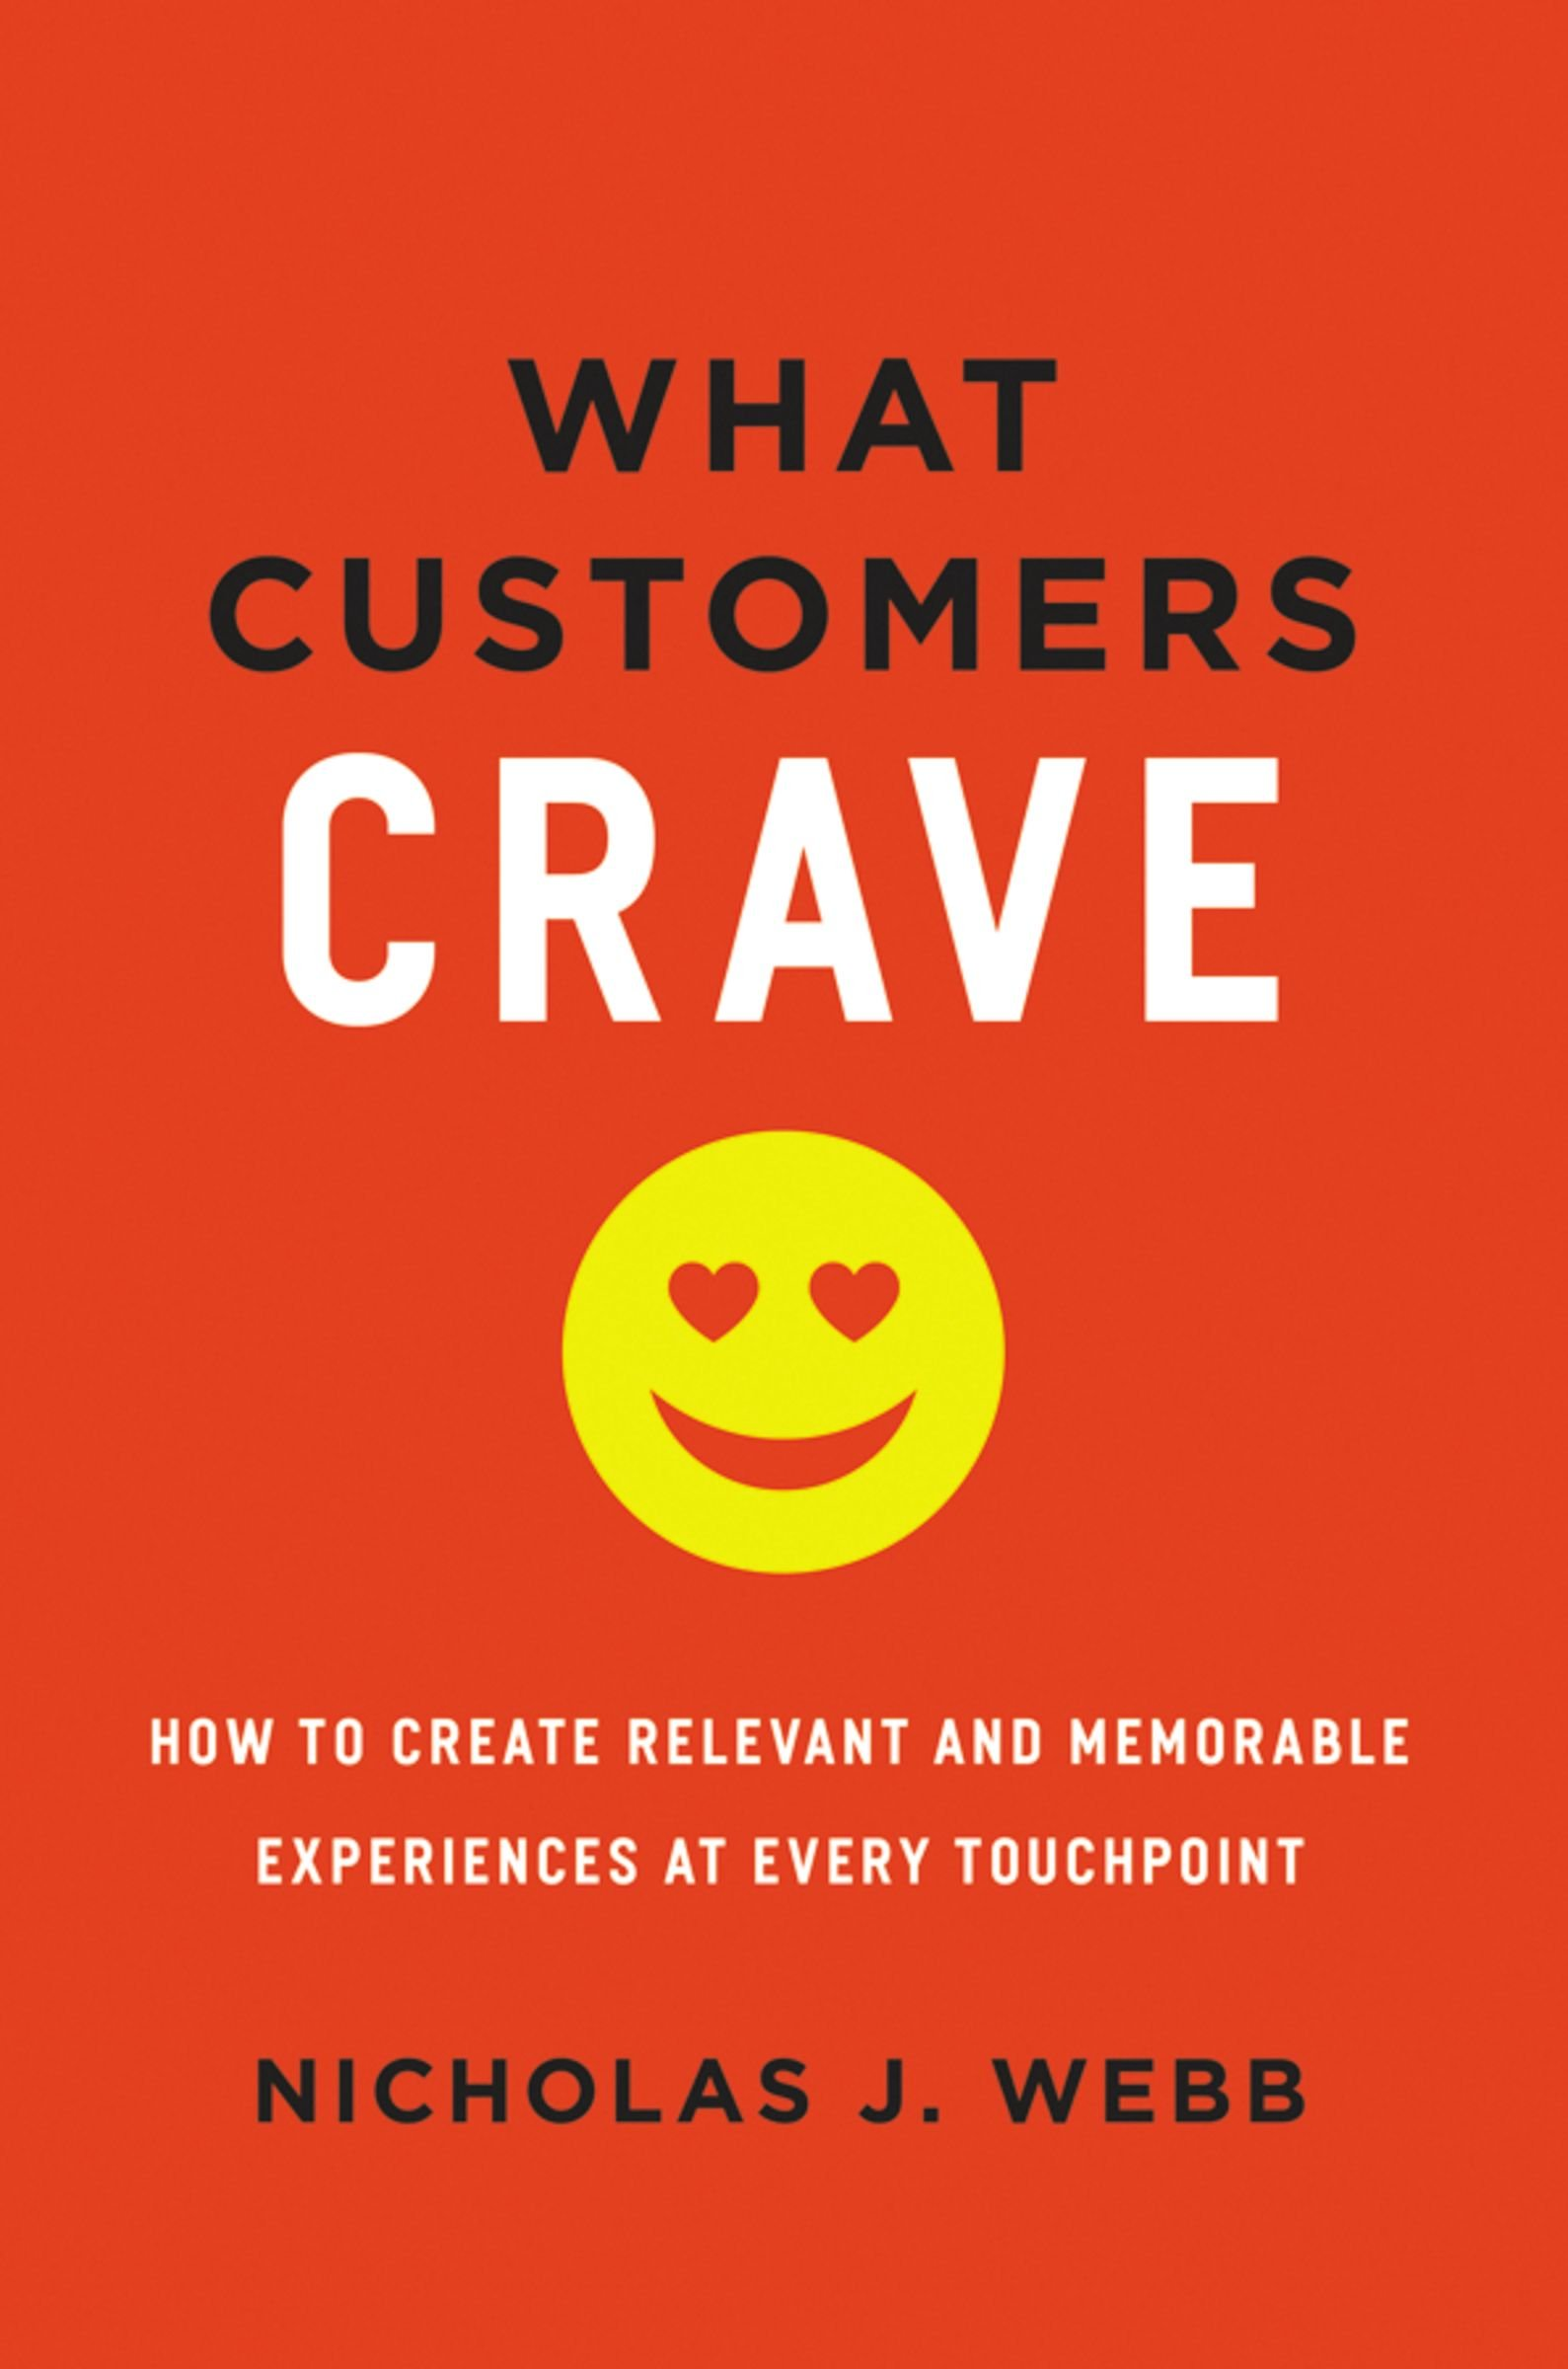 What Customers Crave: How to Create Relevant and Memorable Experiences at Every Touchpoint